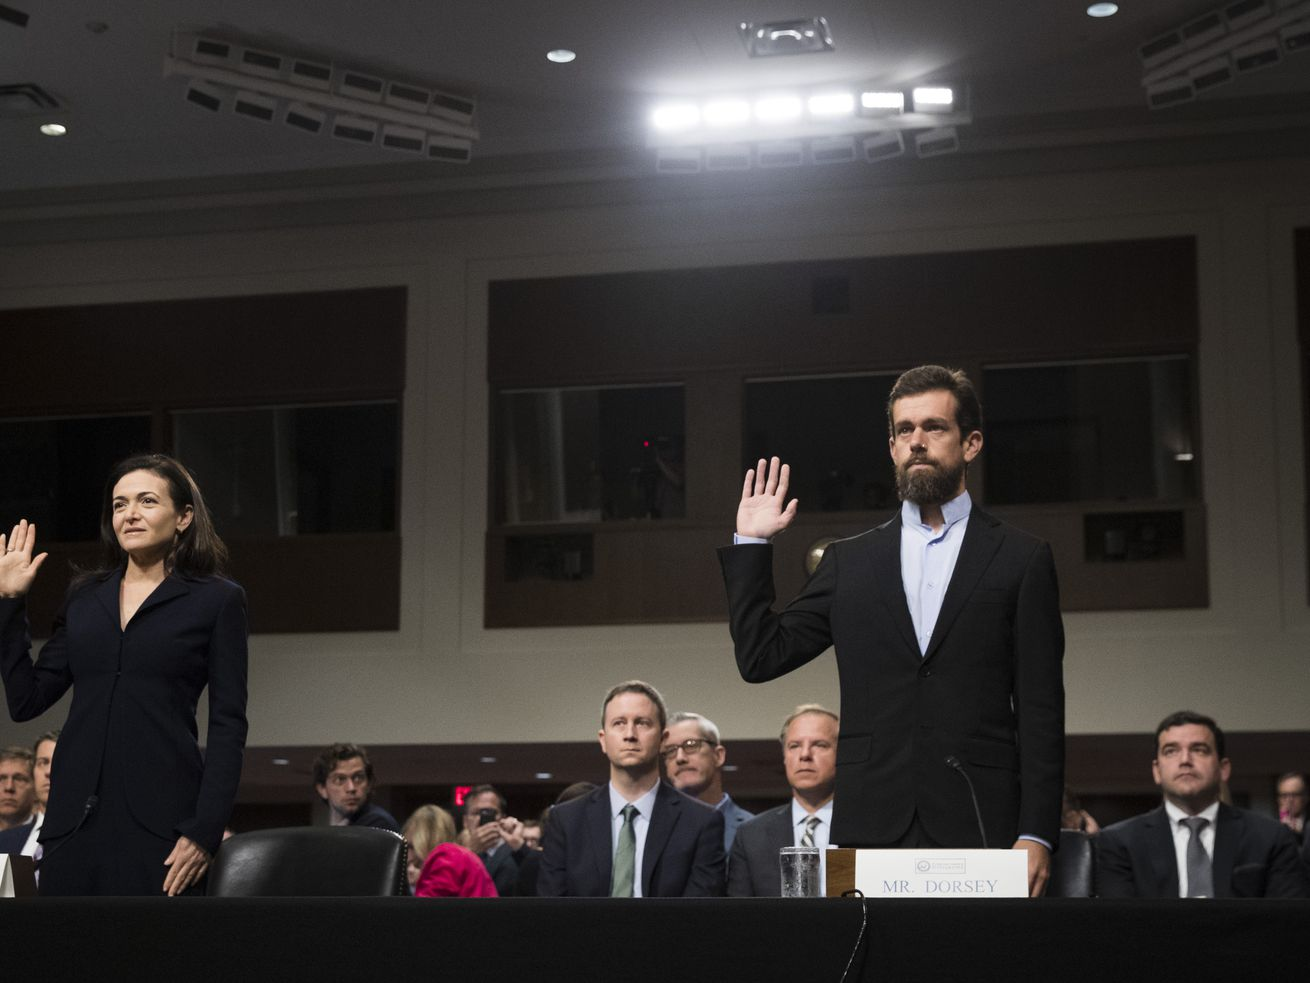 Facebook chief operating officer Sheryl Sandberg and Twitter chief executive officer Jack Dorsey at a hearing on September 5, 2018, in Washington, DC.